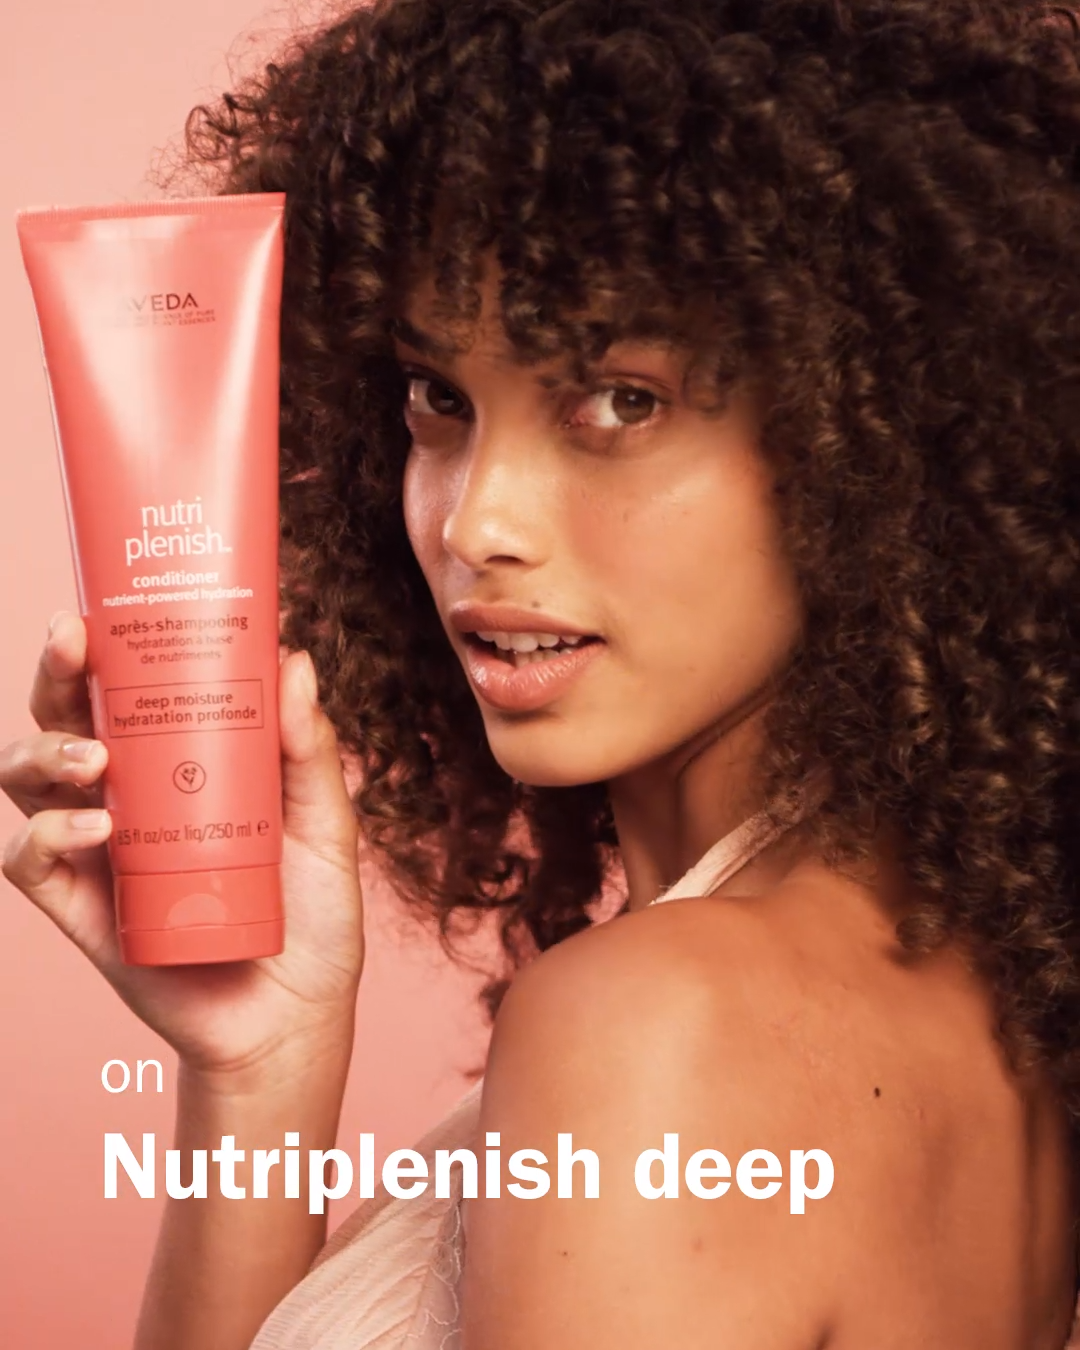 Intensely hydrating vegan products for curly and c